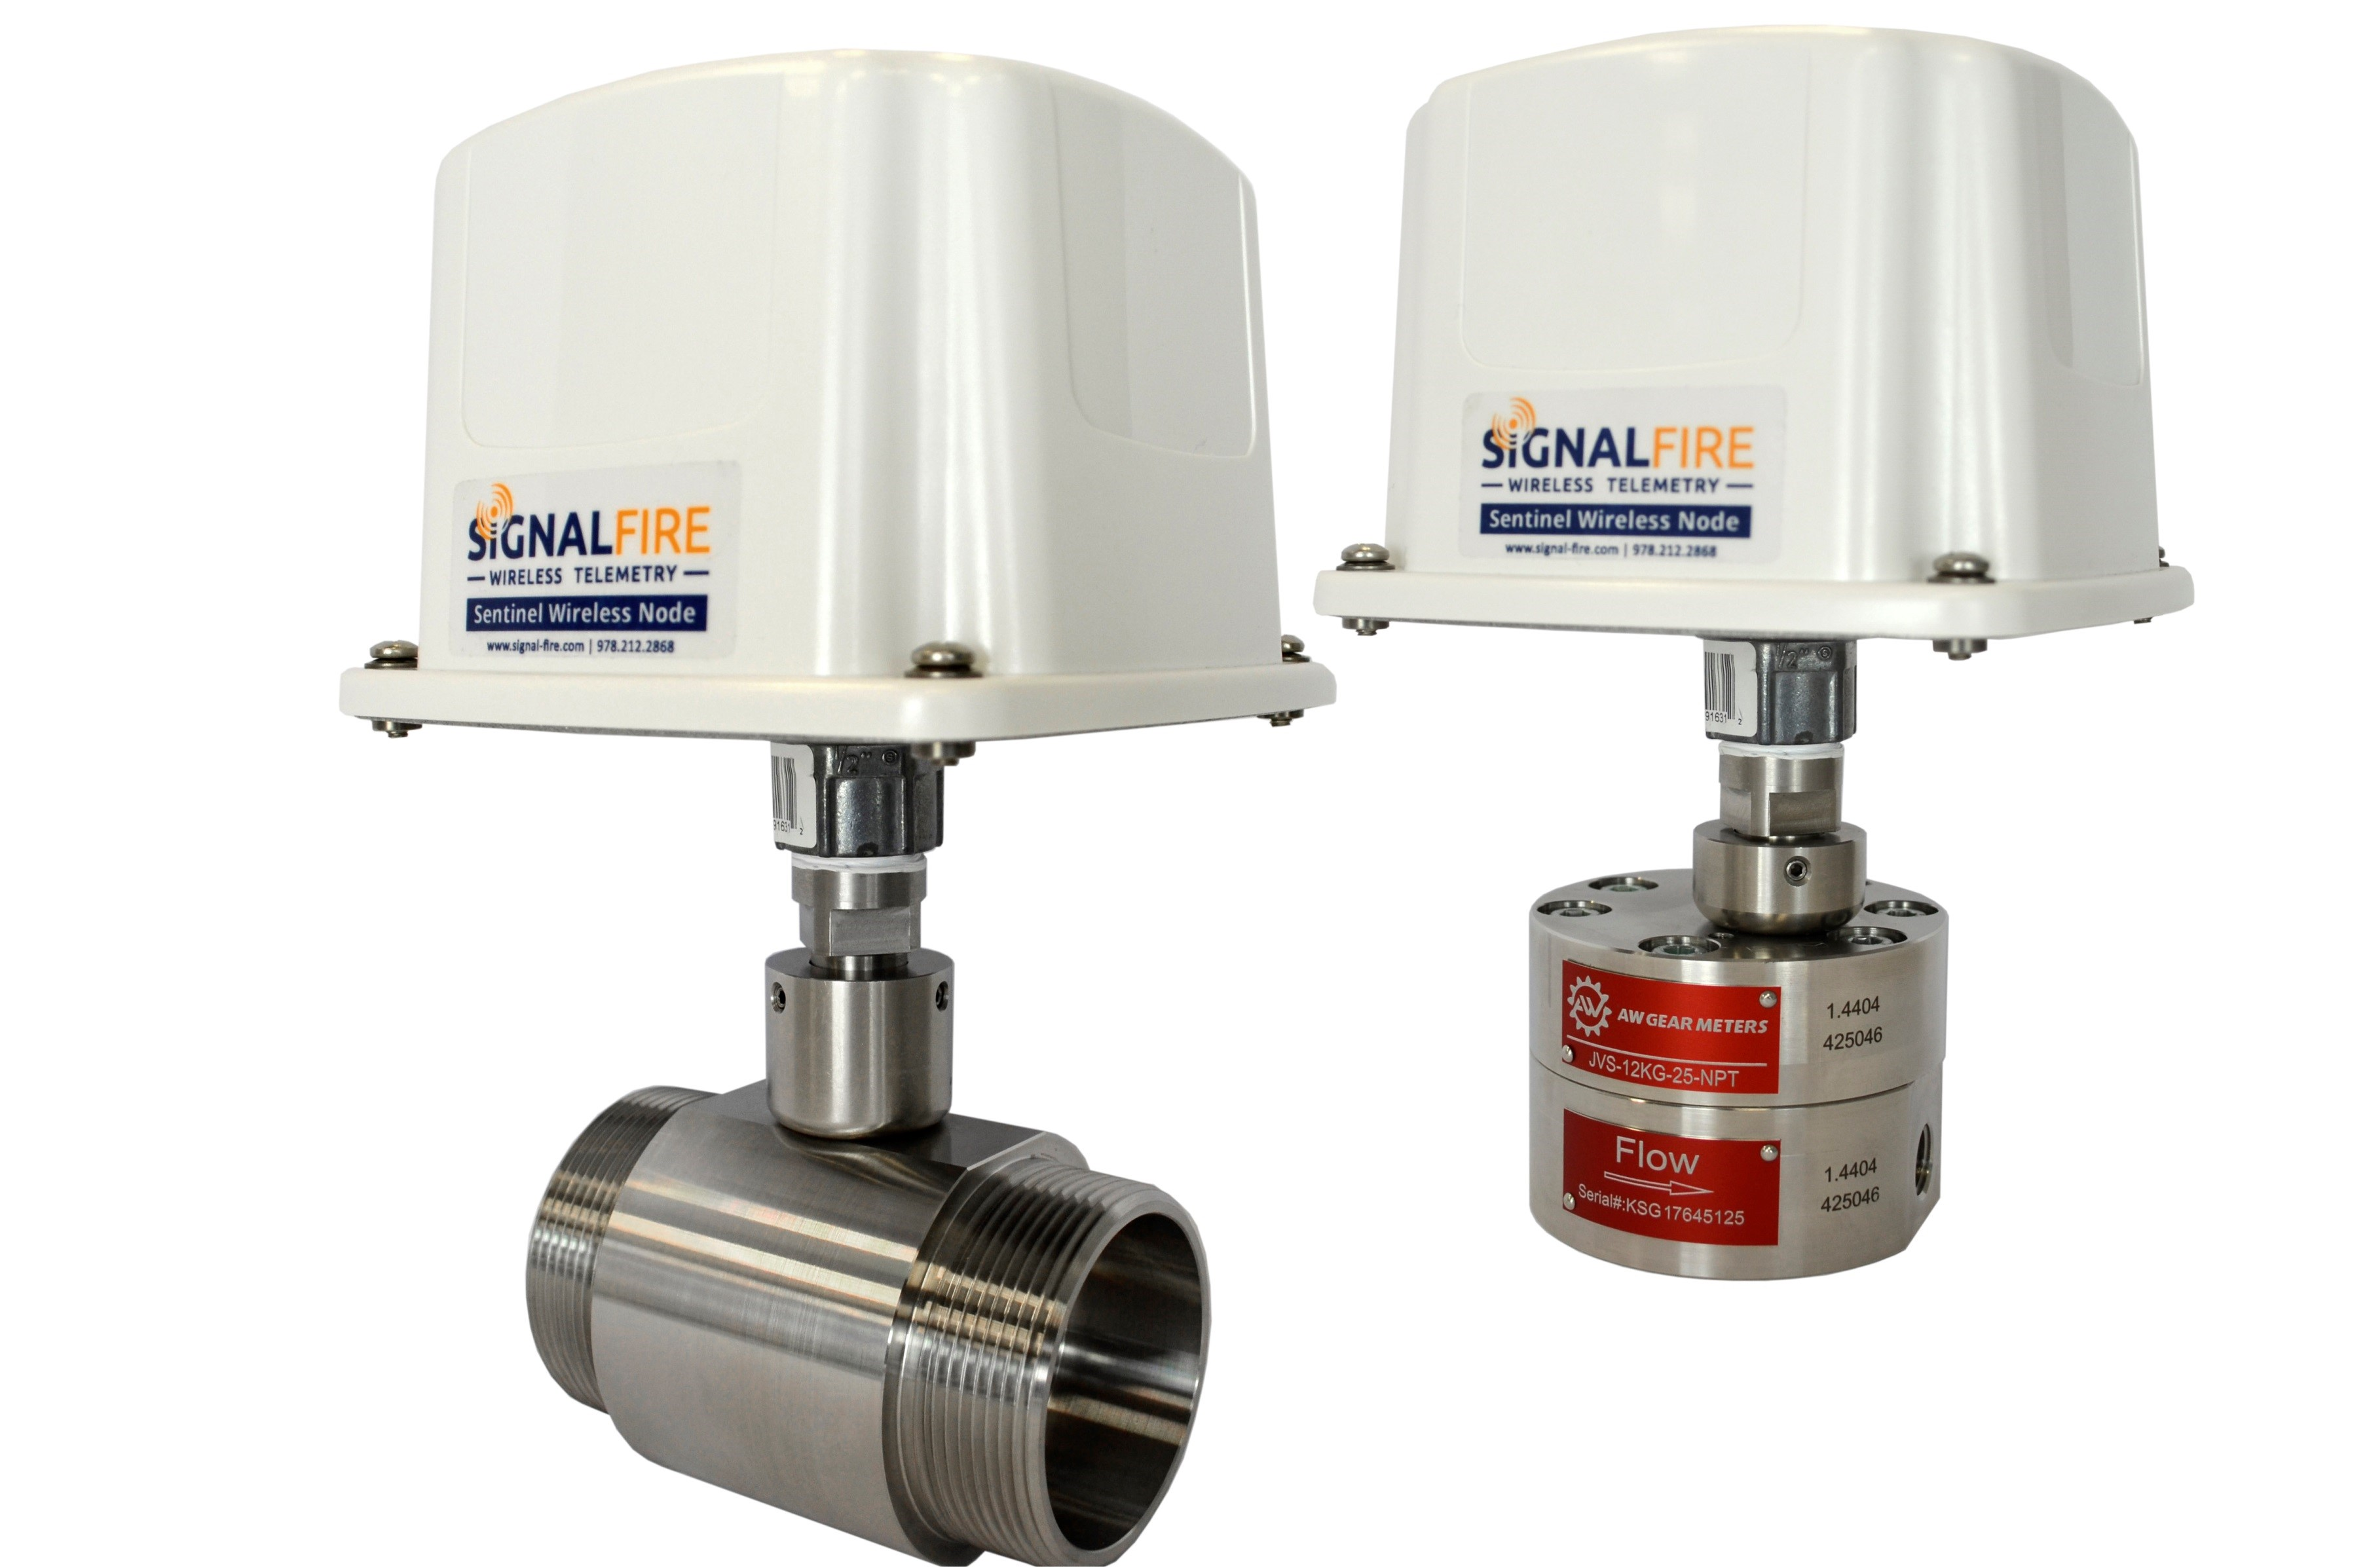 SignalFire and AW-Lake introduce SFS-WP wireless flow transmitter